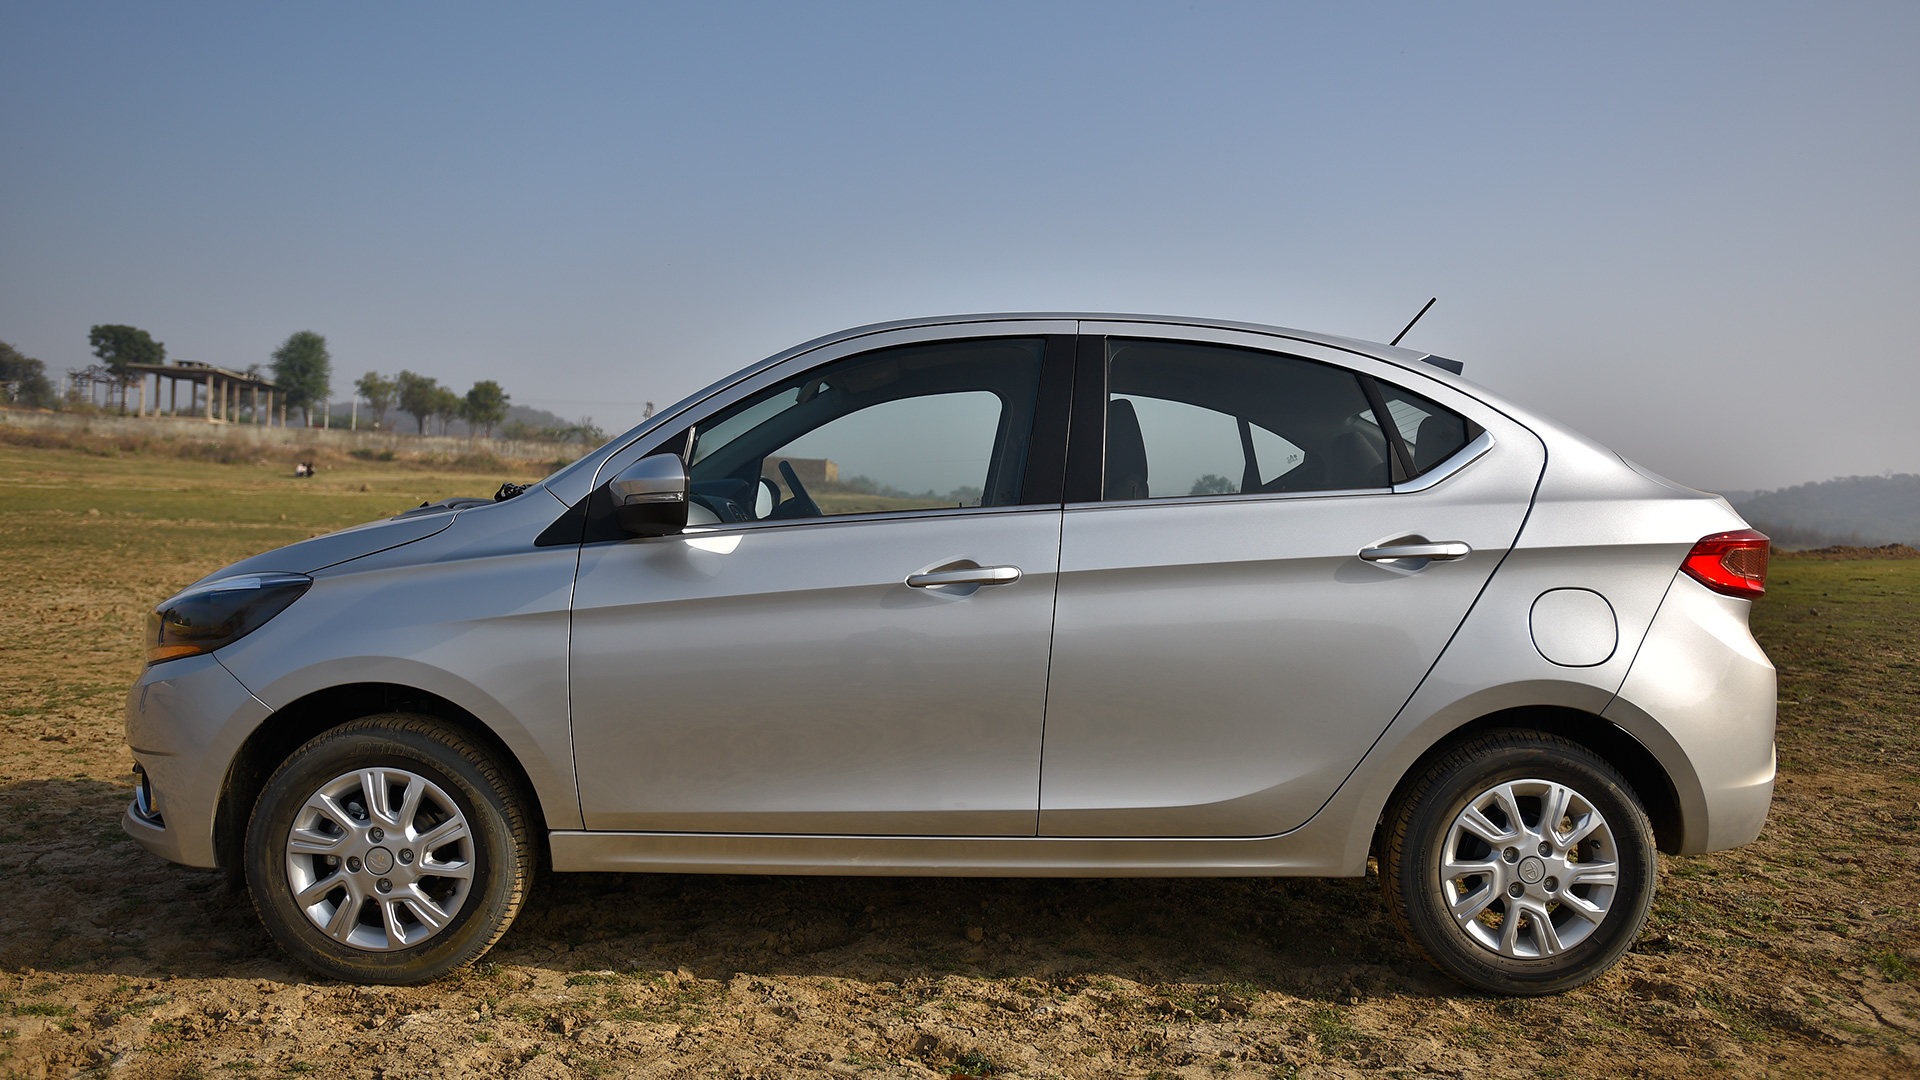 Bmw car 2017 price in india 16